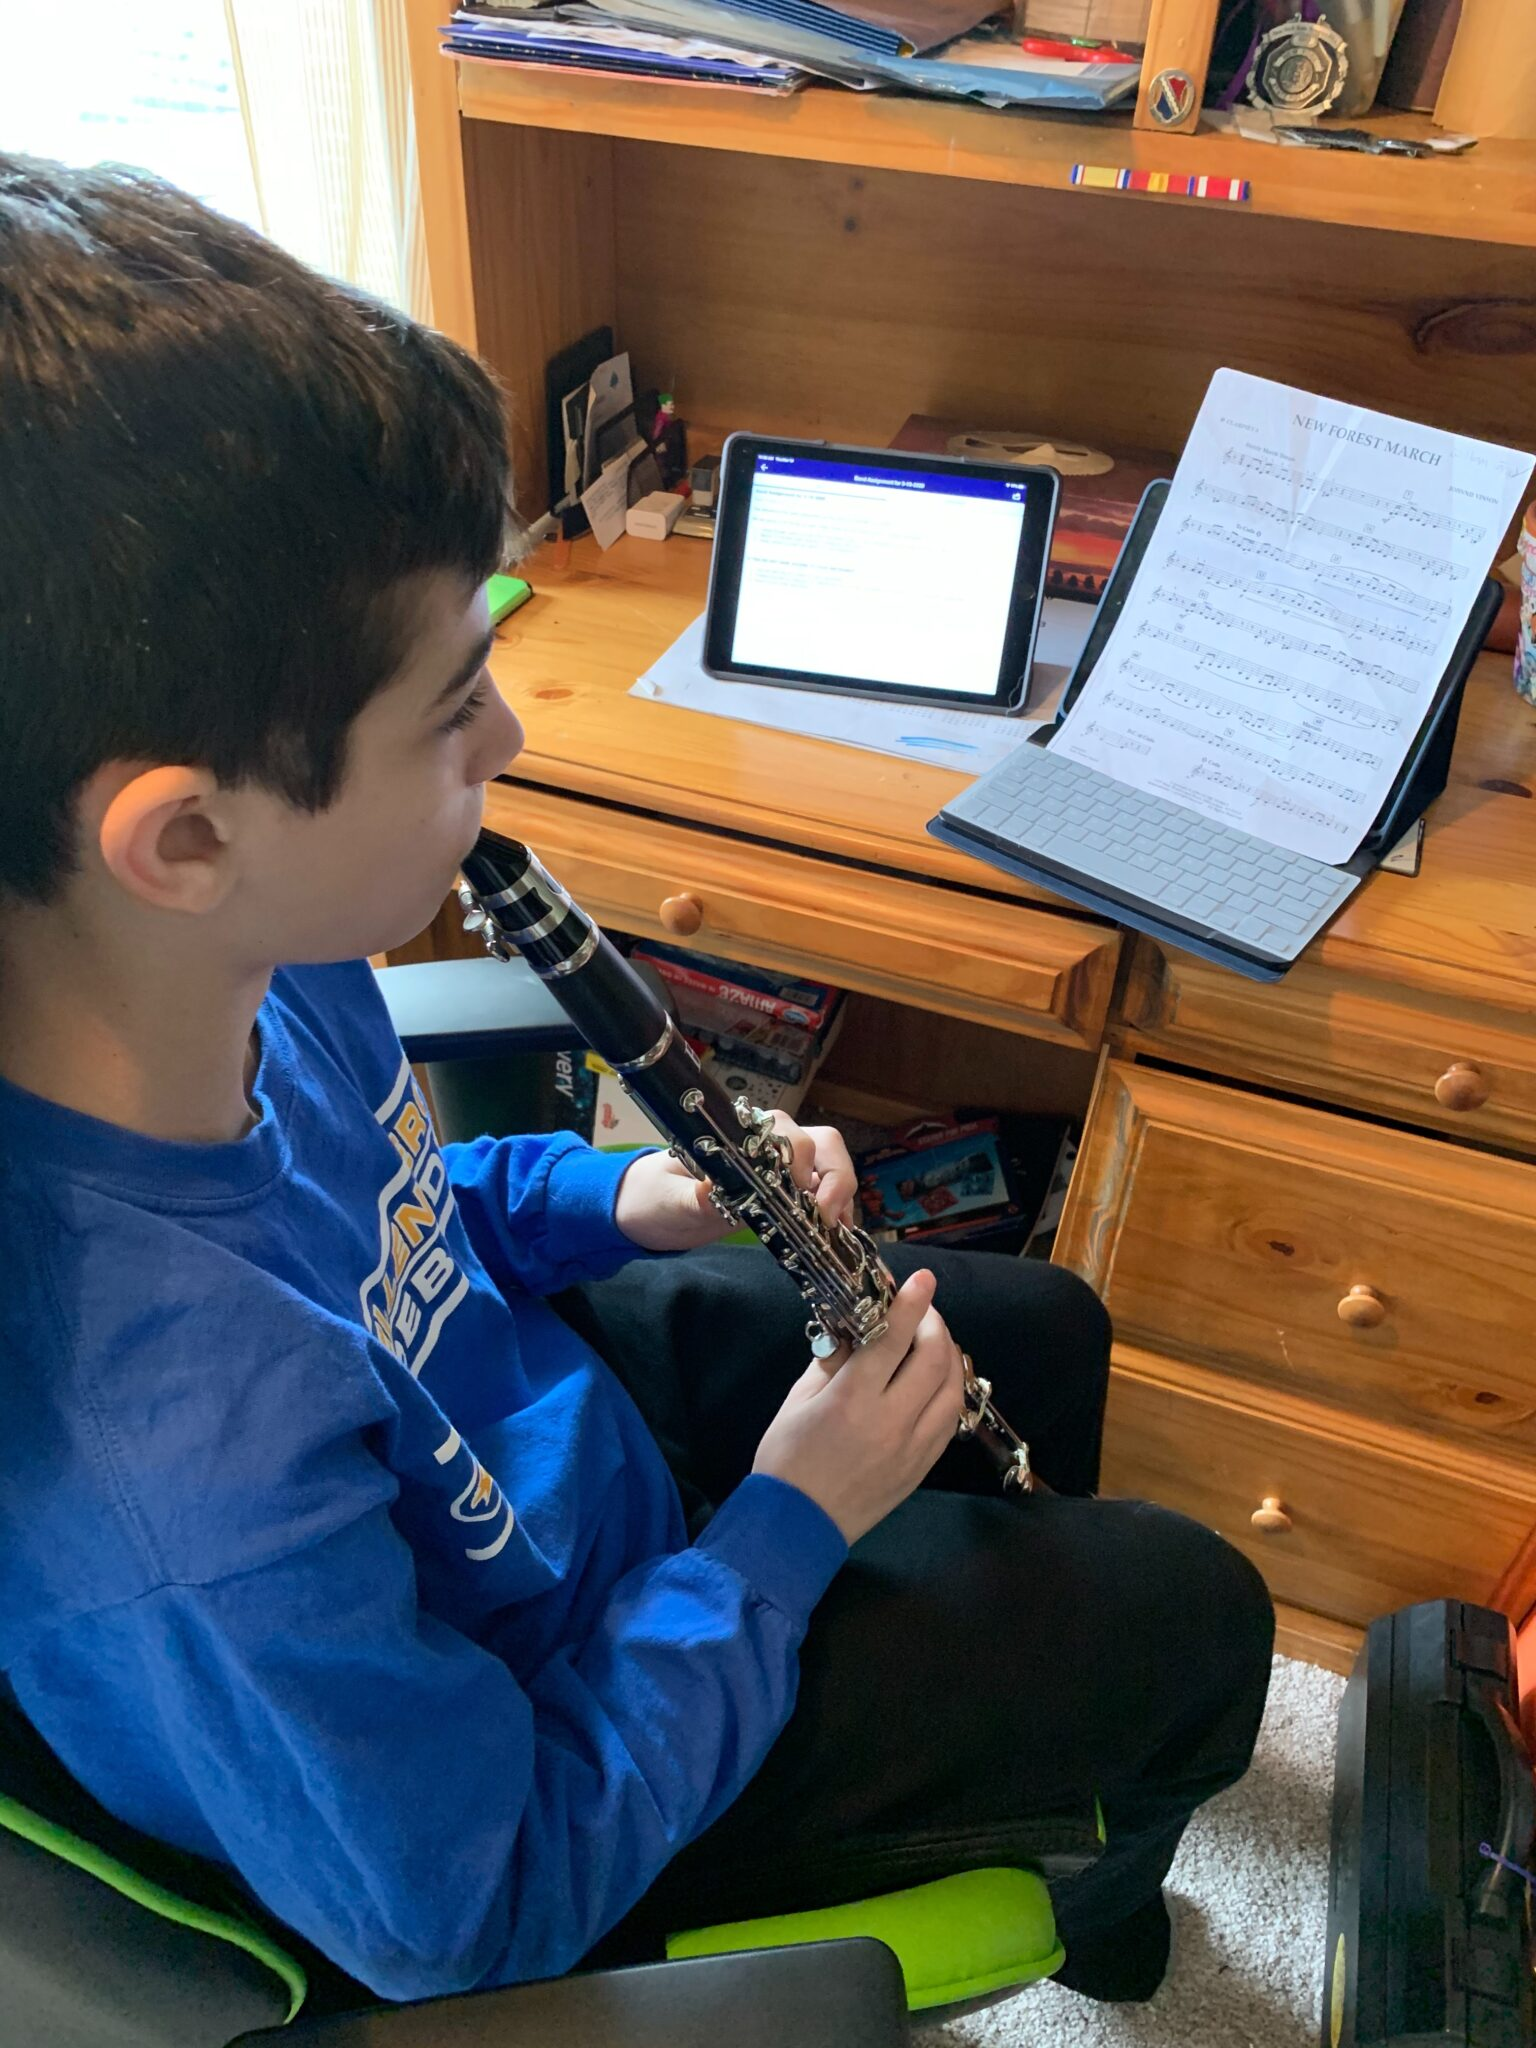 William Fried '25 completes his assignment for Praetorian Band